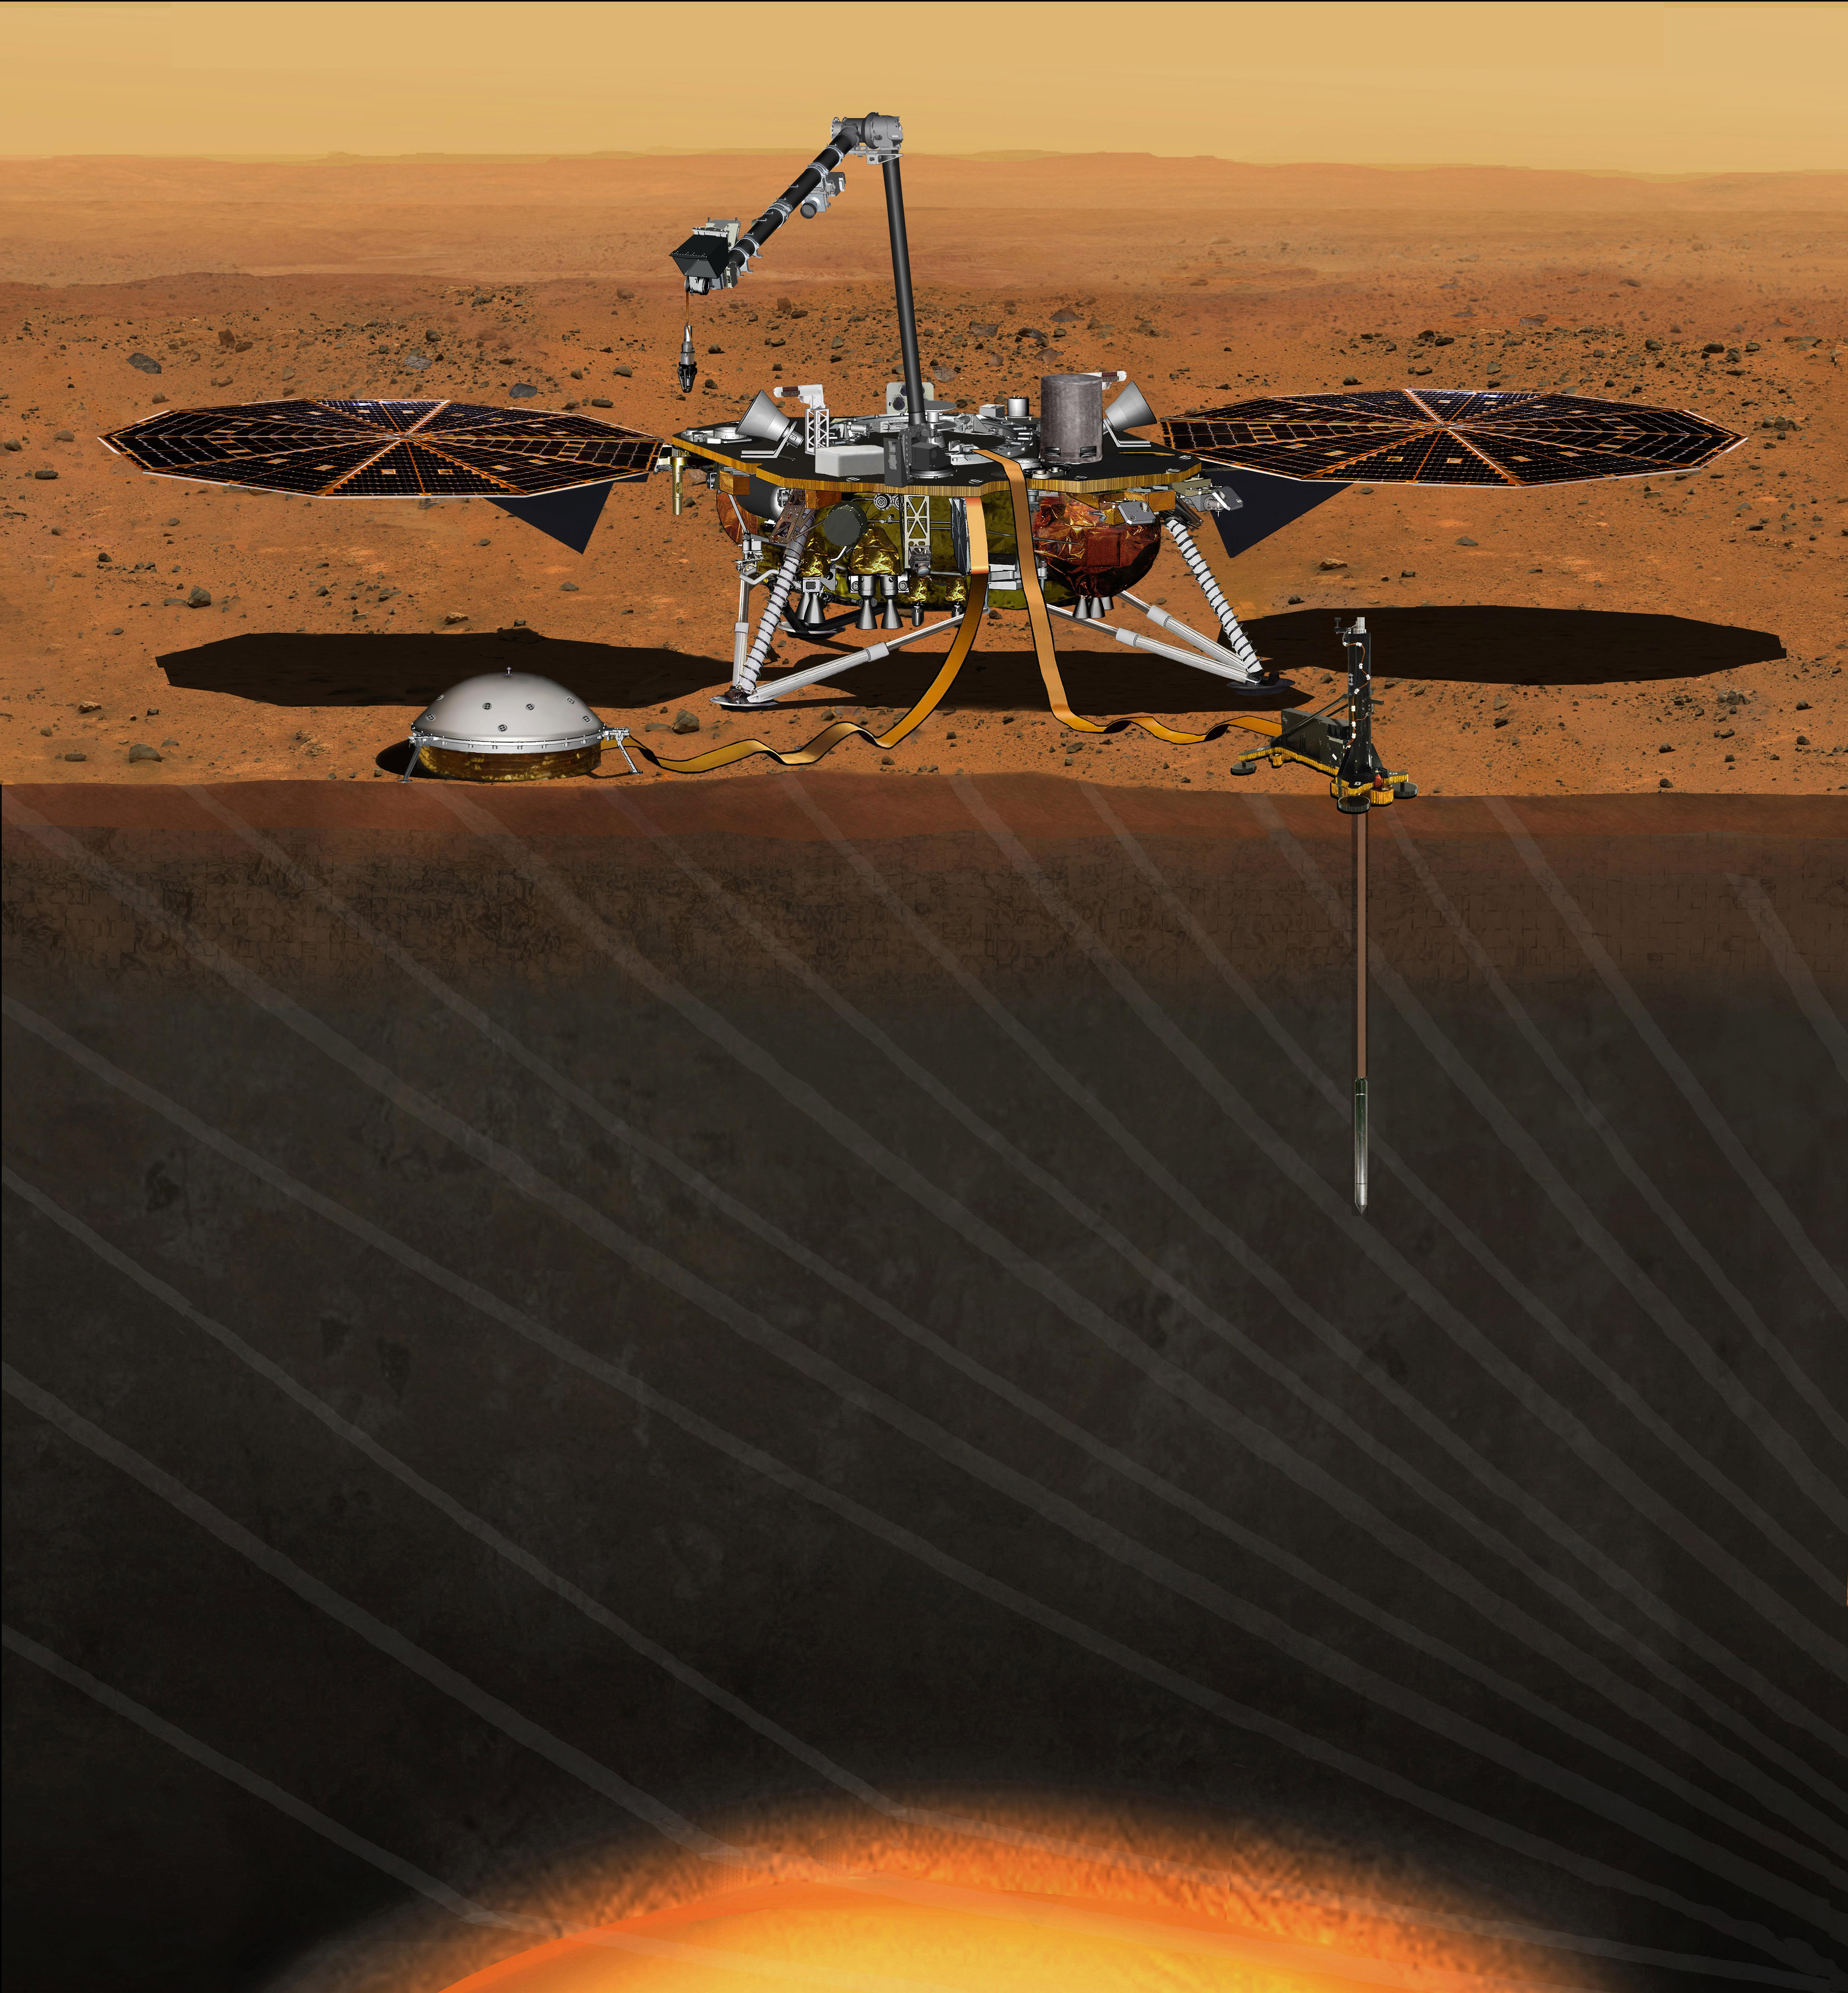 NASA prepares to send the first interplanetary cubsats to Mars 17